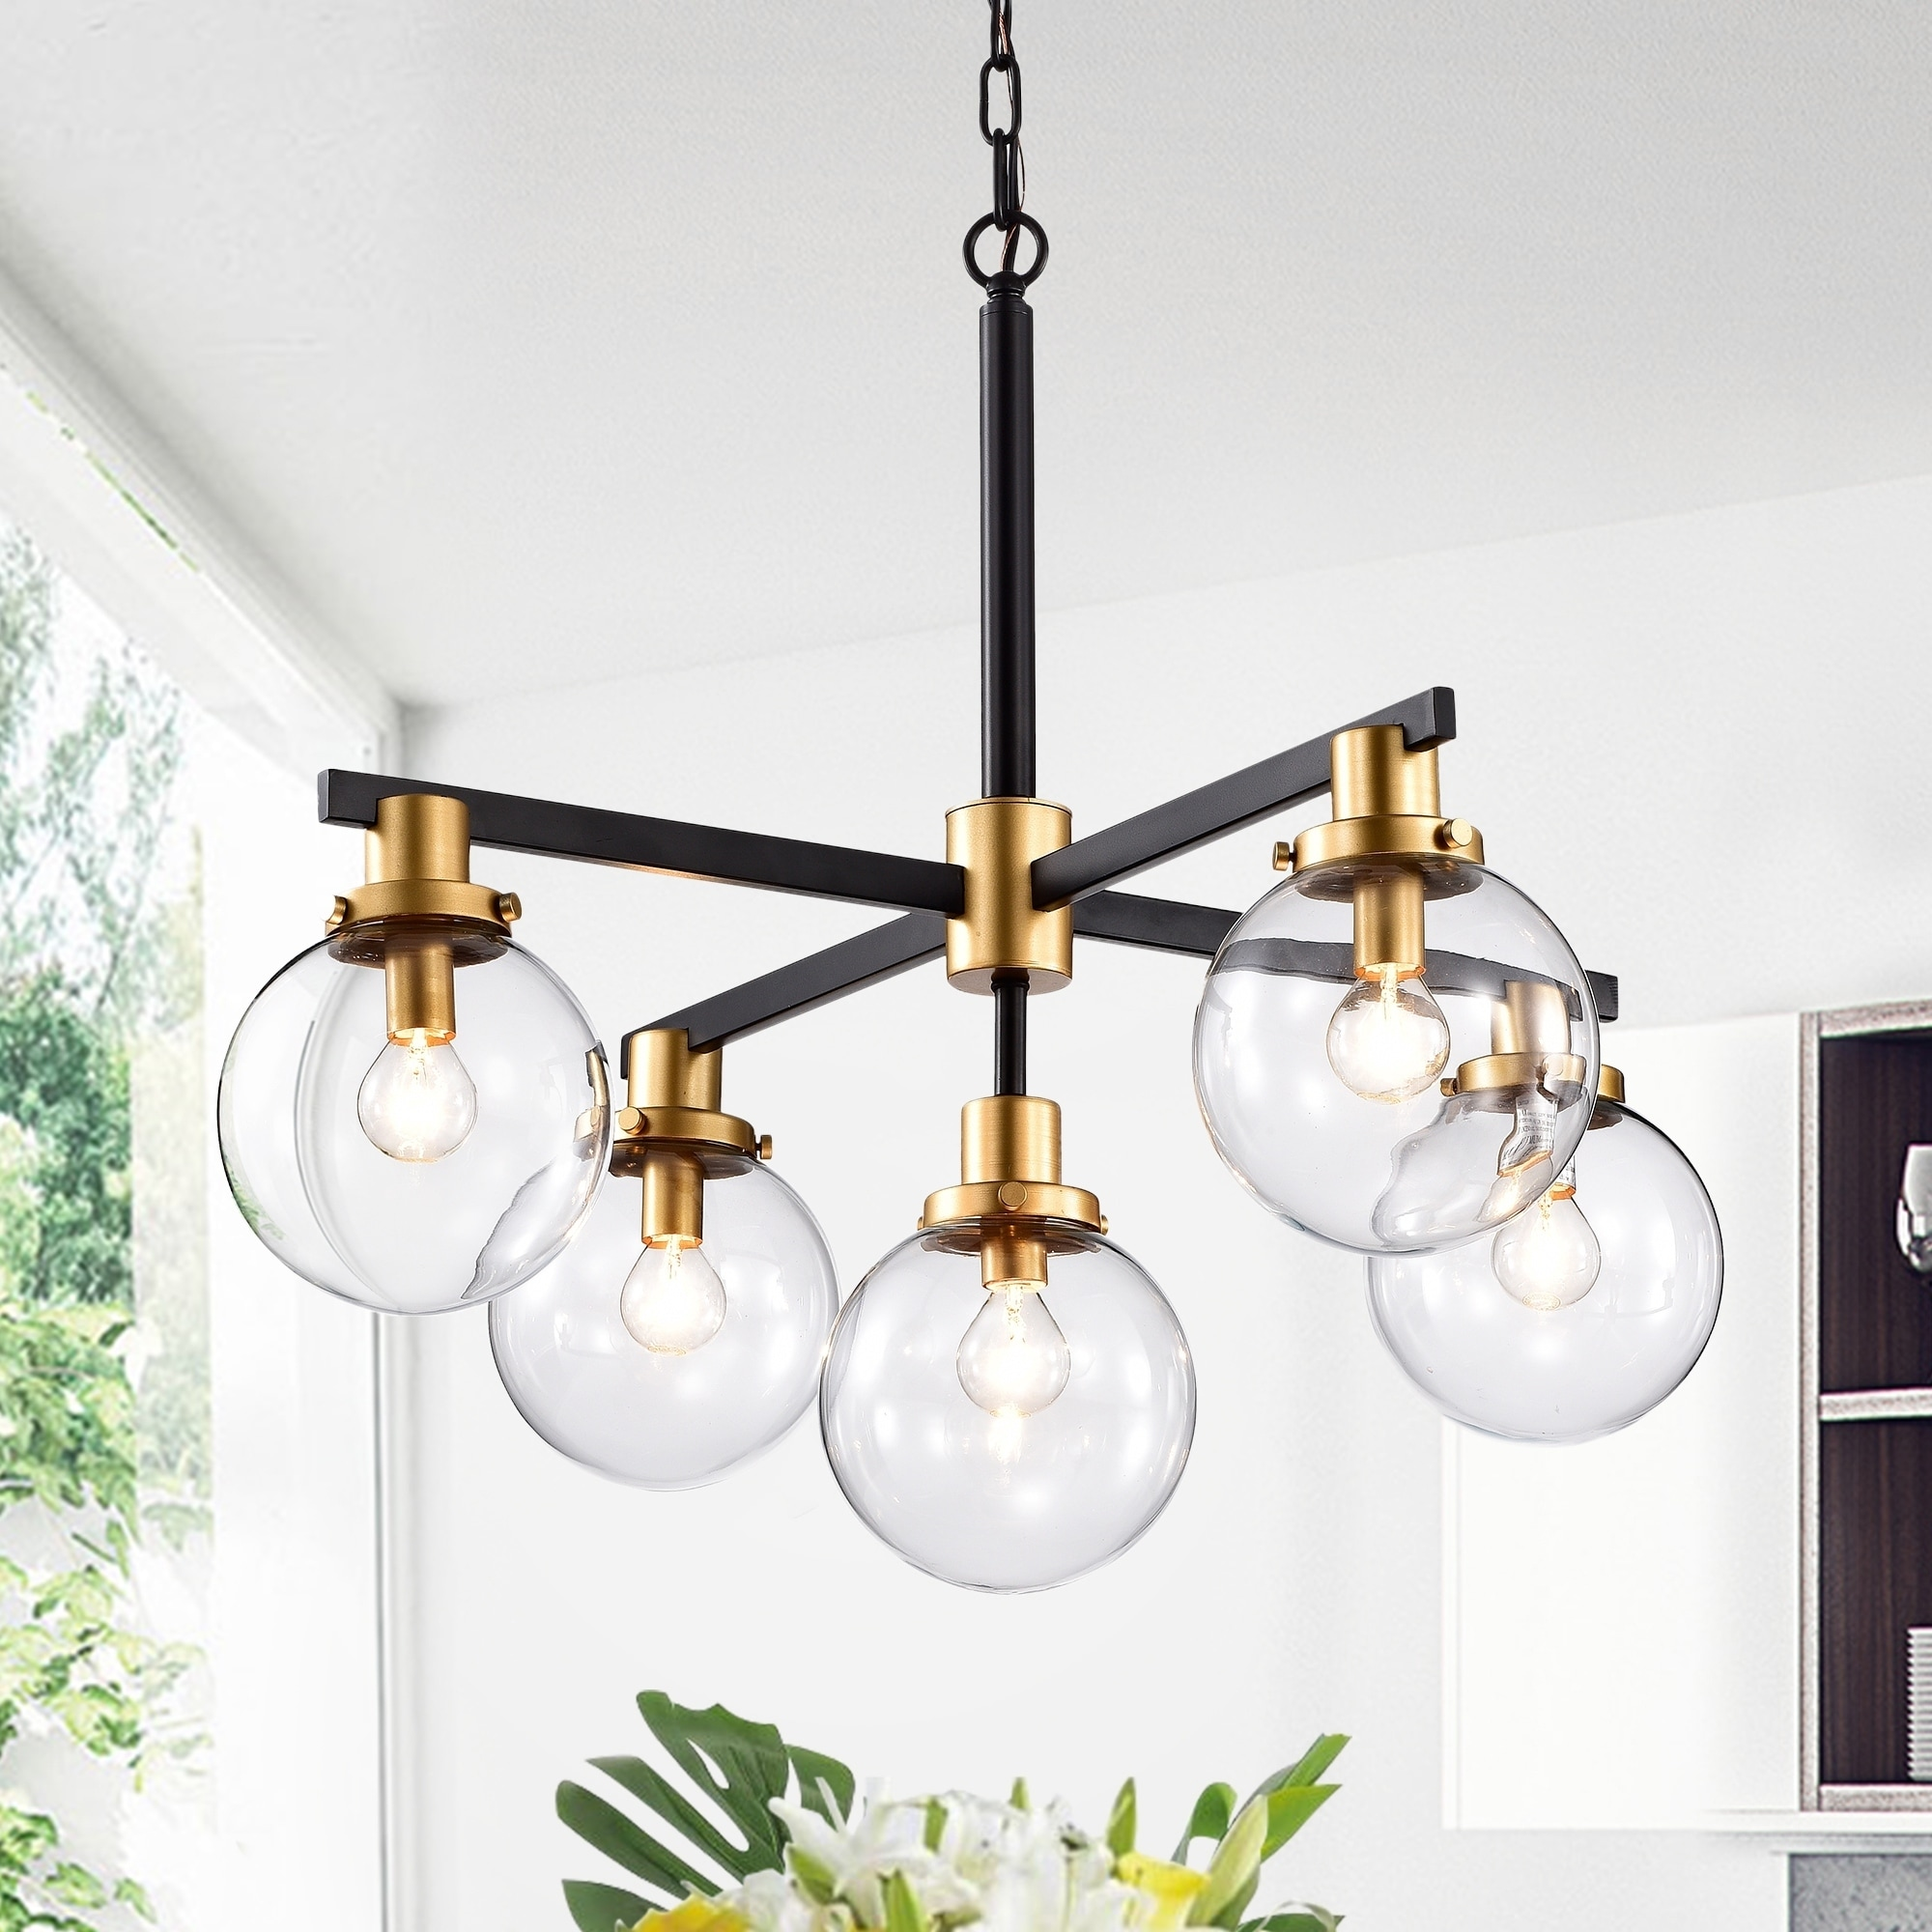 Shop Black Friday Deals On Carson Carrington Mckinnon 5 Light Matte Black Gold Chandelier On Sale Overstock 25558576